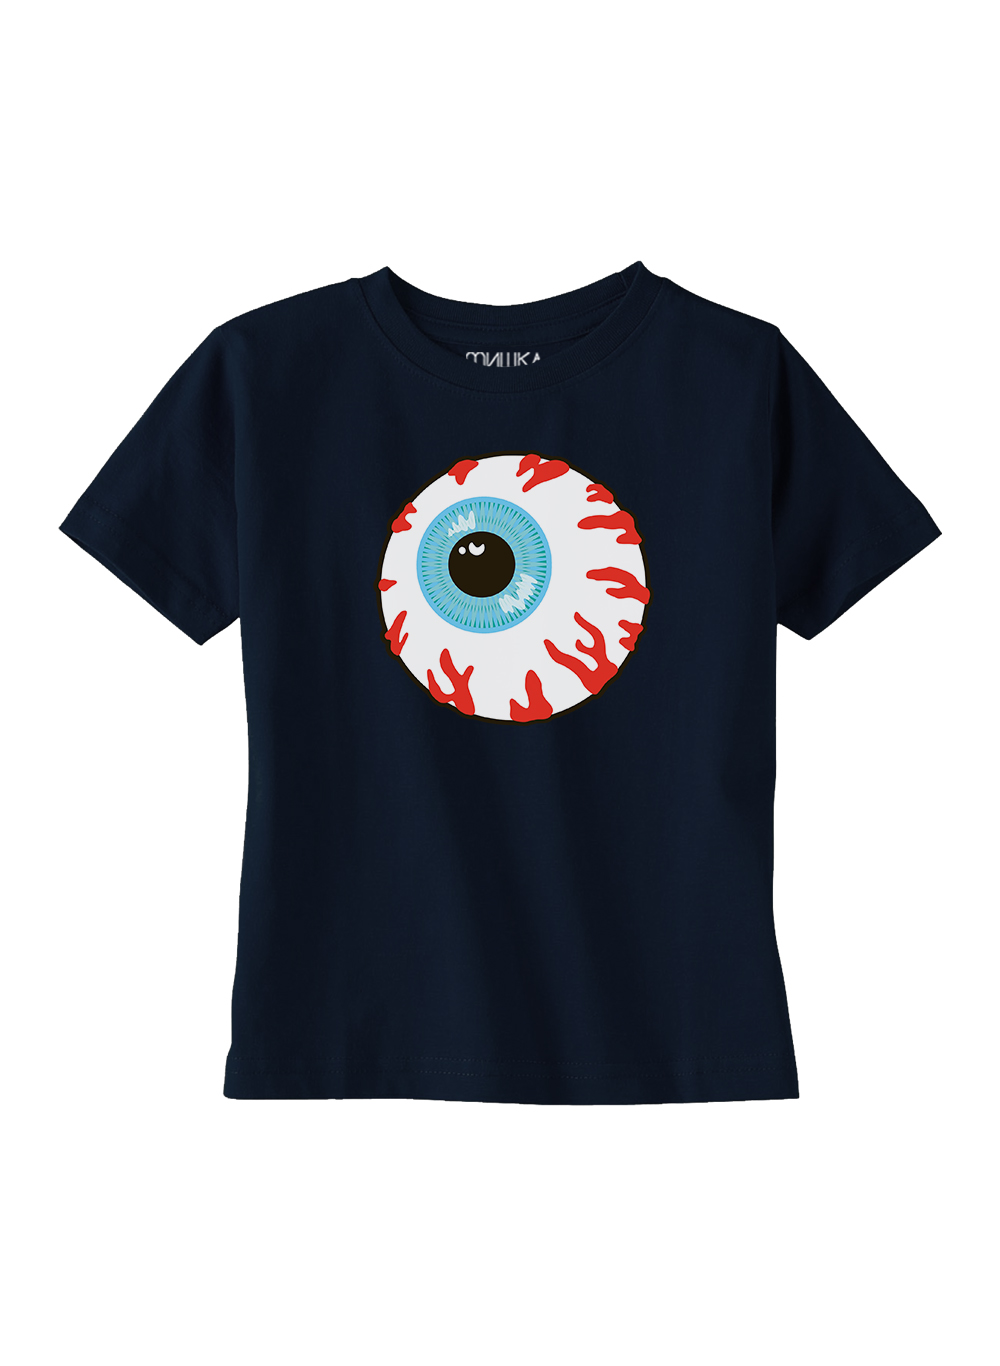 Classic Keep Watch Toddler Tee